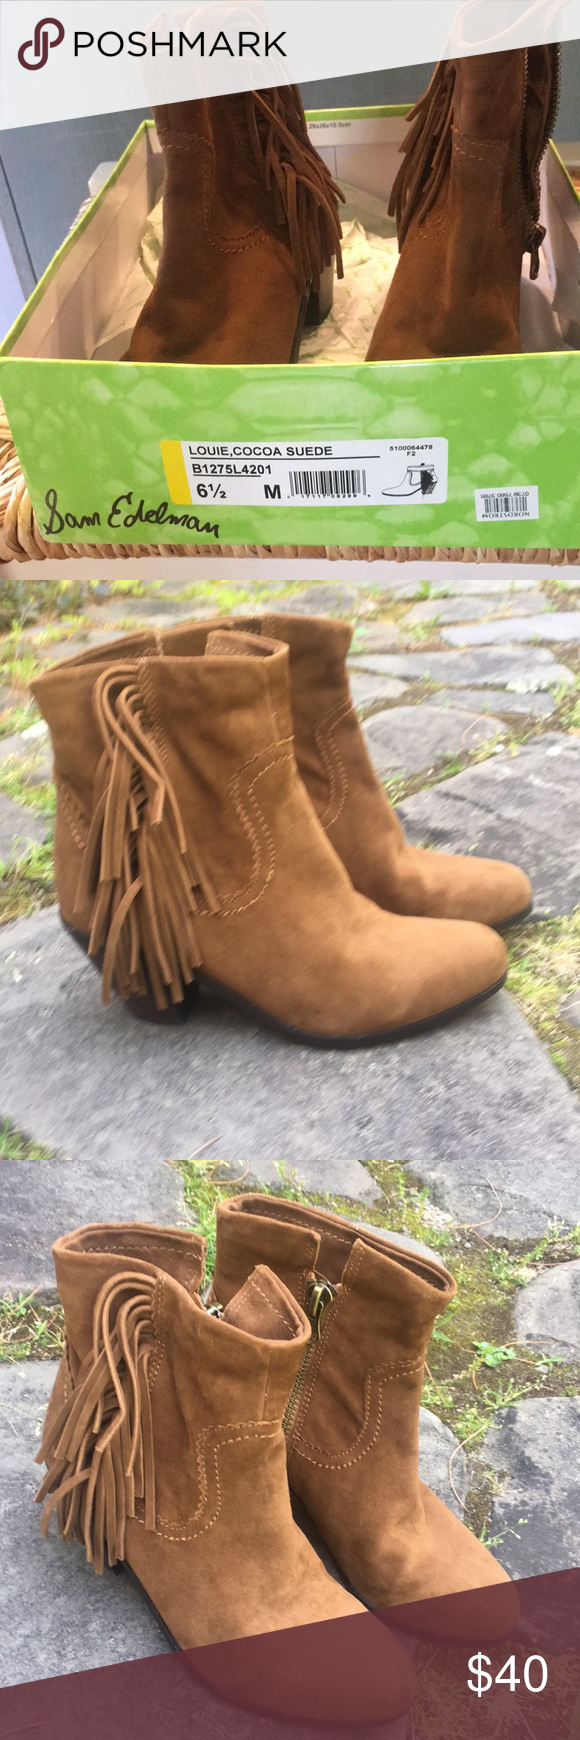 a4cc5deb81fe SAM EDELMAN SUEDE ANKLE BOOTIES Suede Louie cocoa booties Sam Edelman Shoes  Ankle Boots   Booties